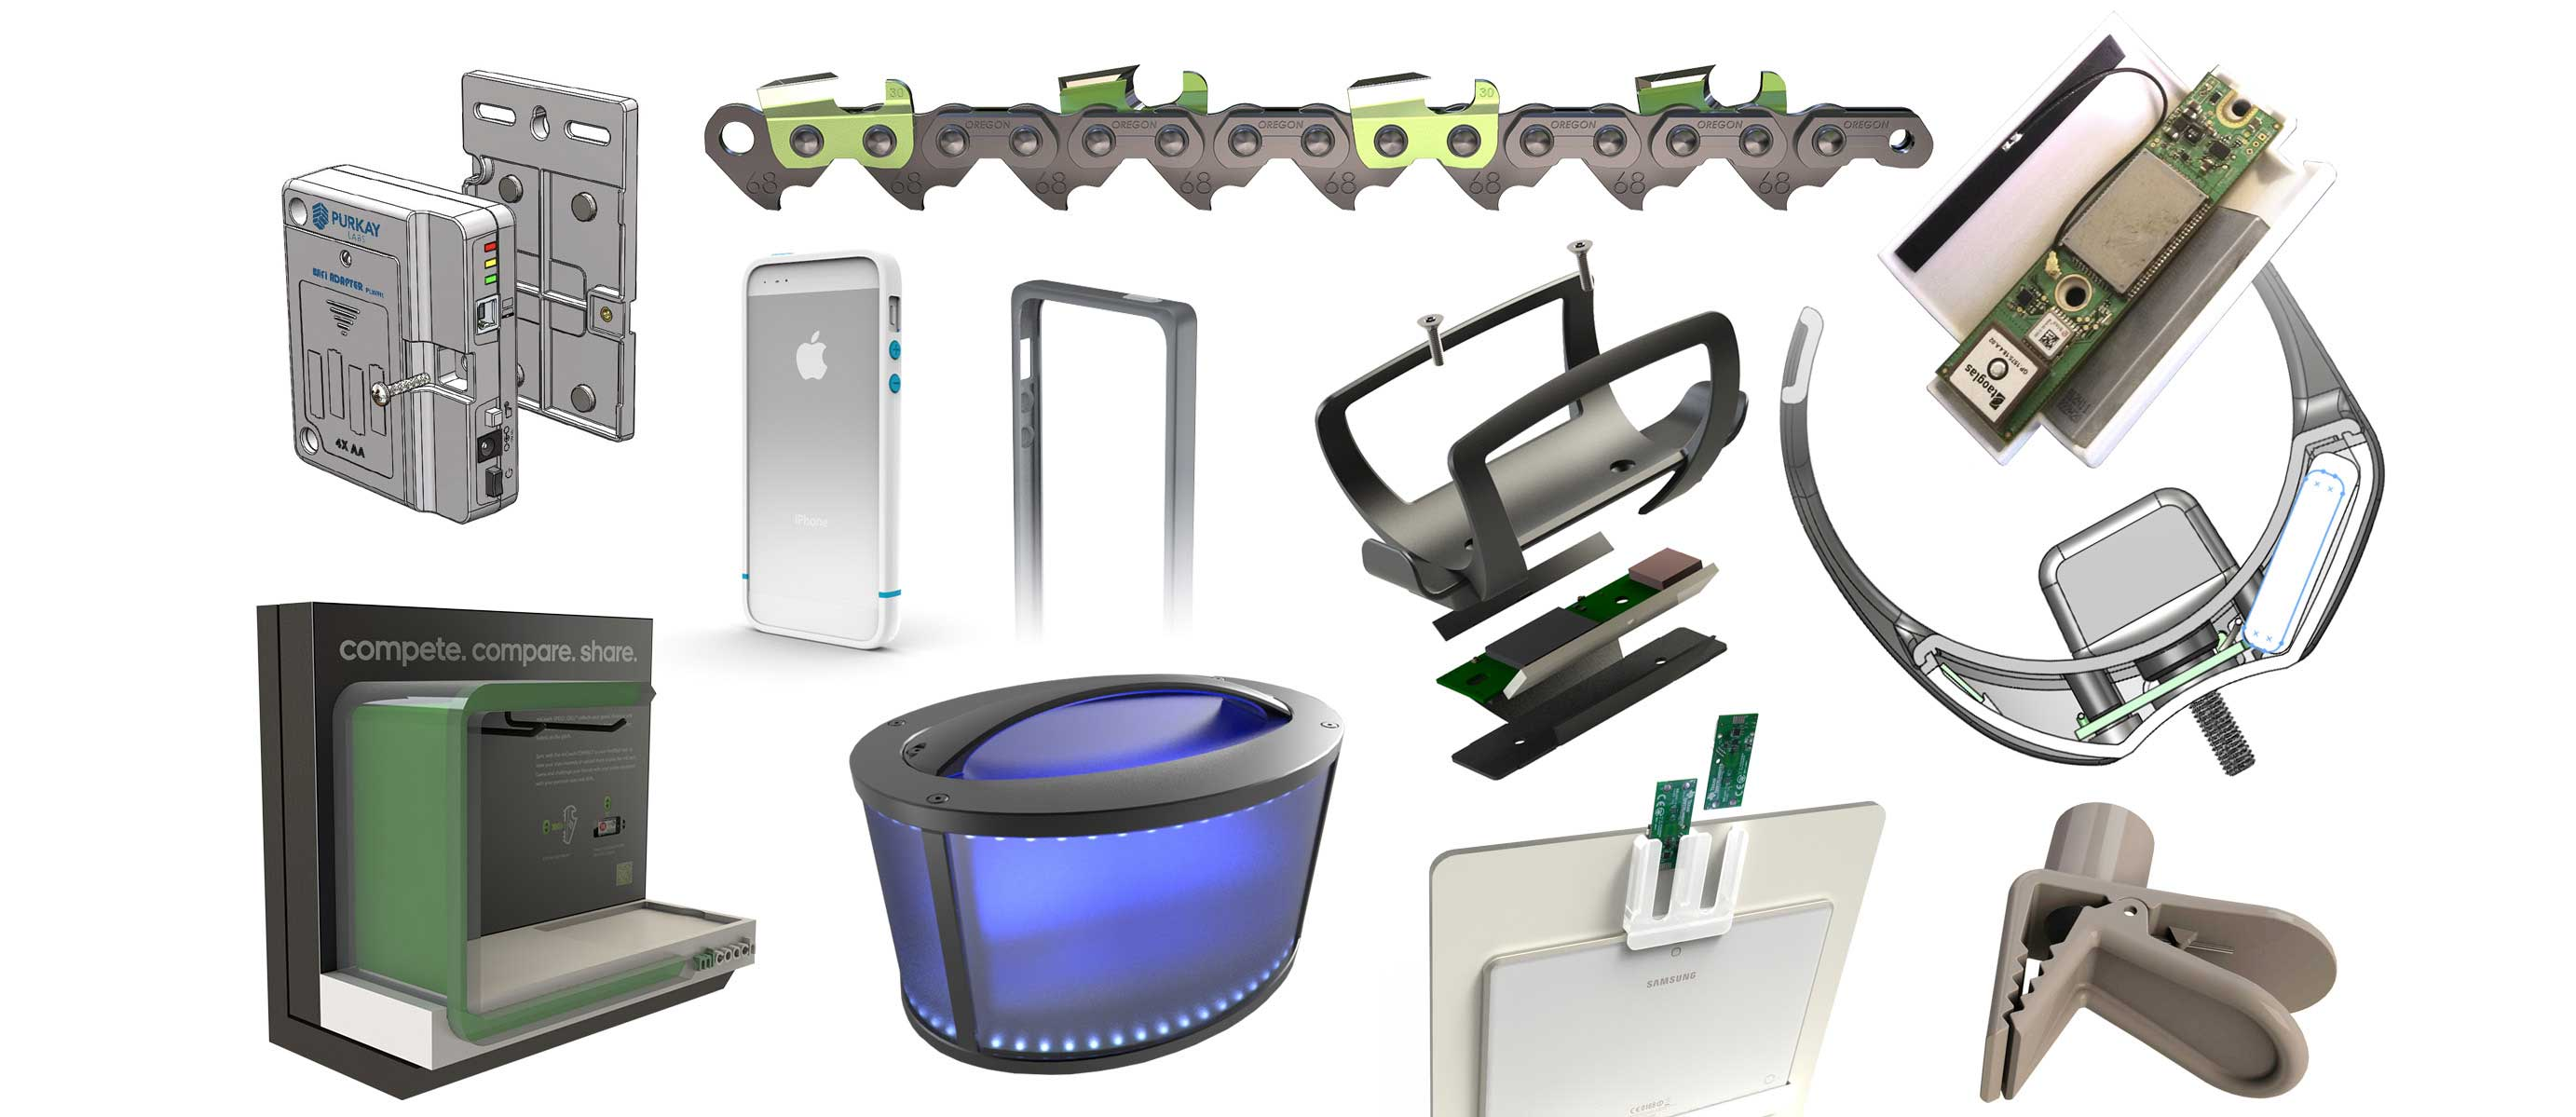 product design samples cad rendering